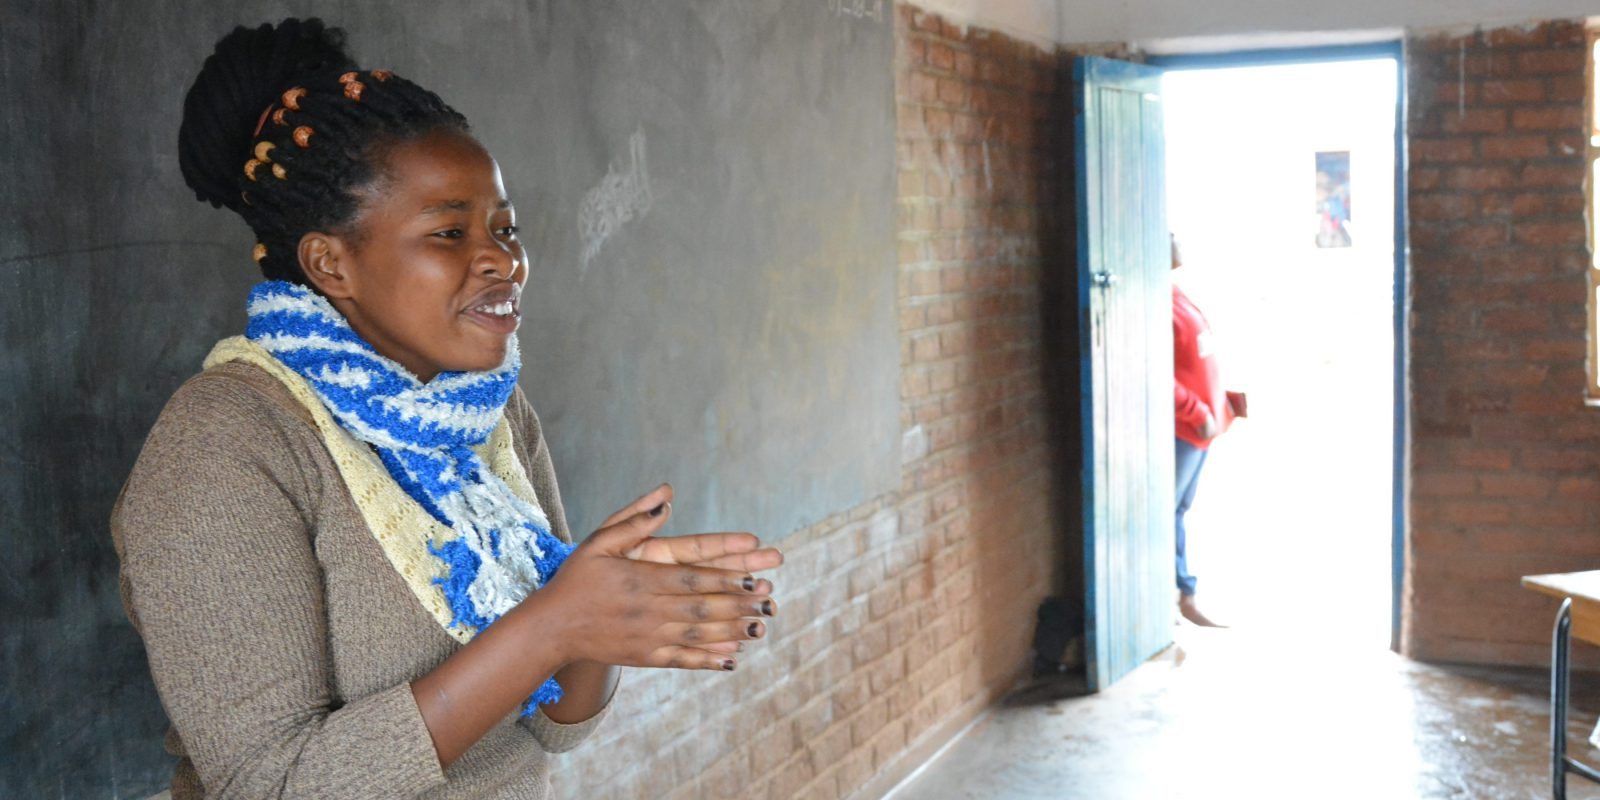 Claudine volunteers as a community social worker for the Naweza project in Dzaleka refugee camp.